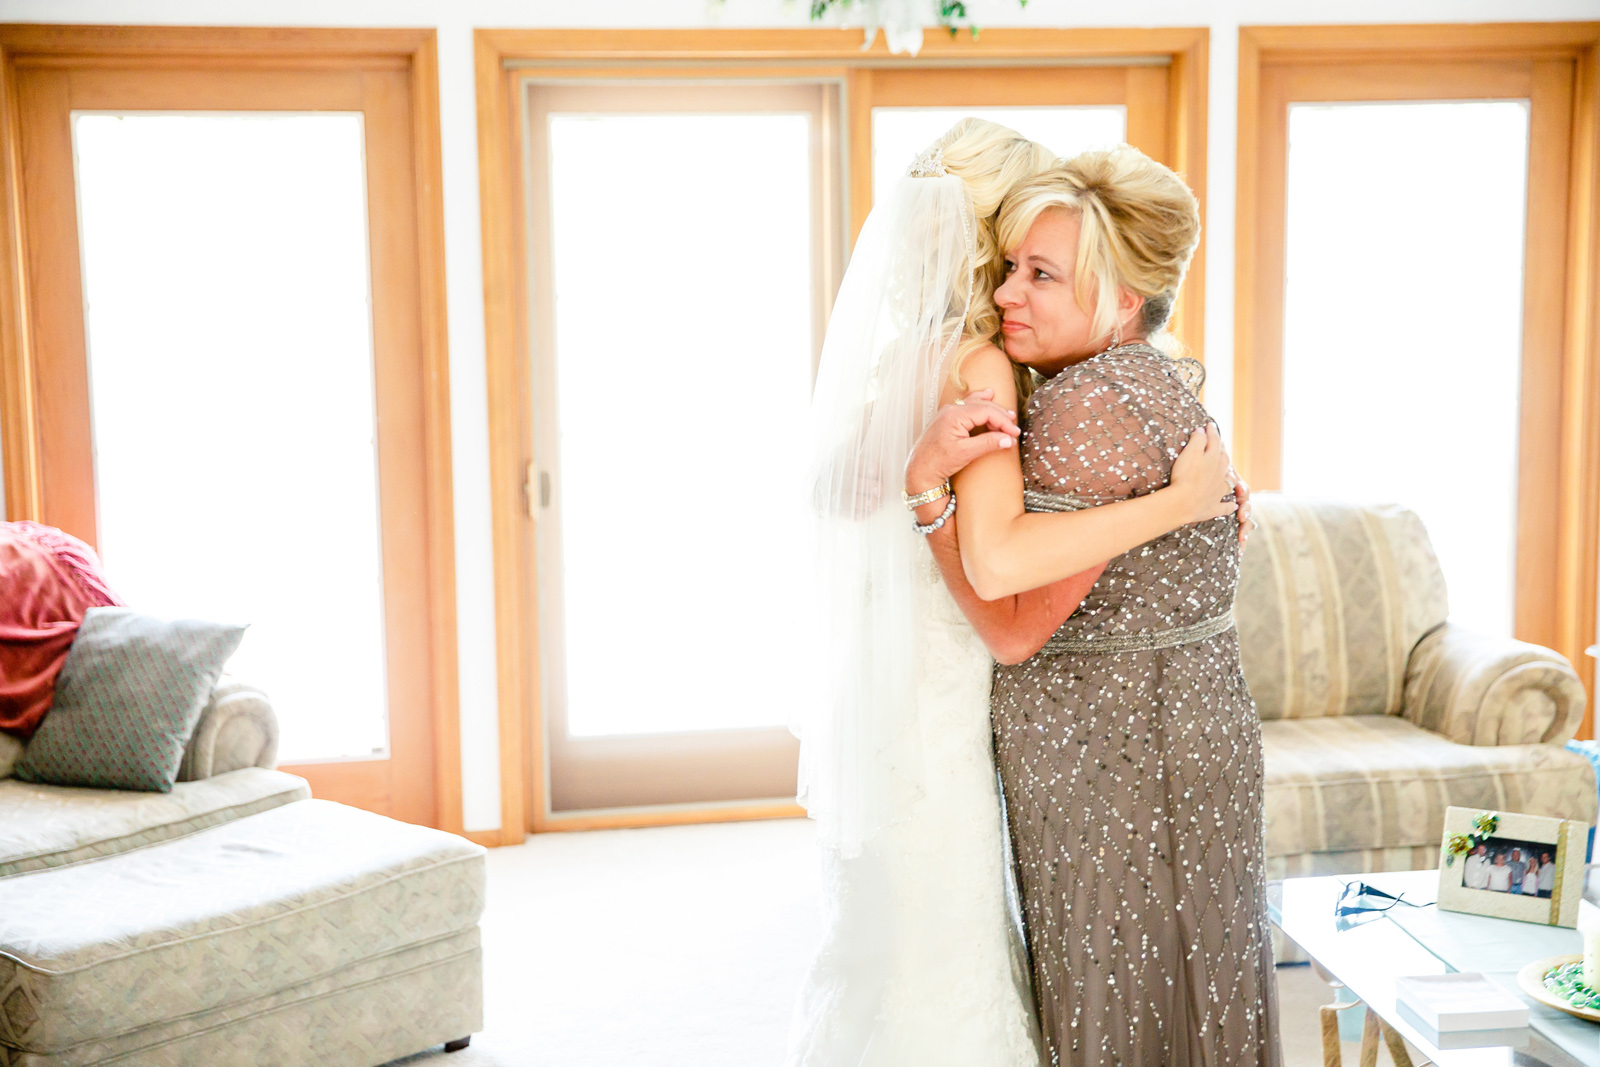 Millstadt Bride and Bridal Party Getting Ready Photos with St. Louis Wedding Photographers by Oldani Photography 12.jpg